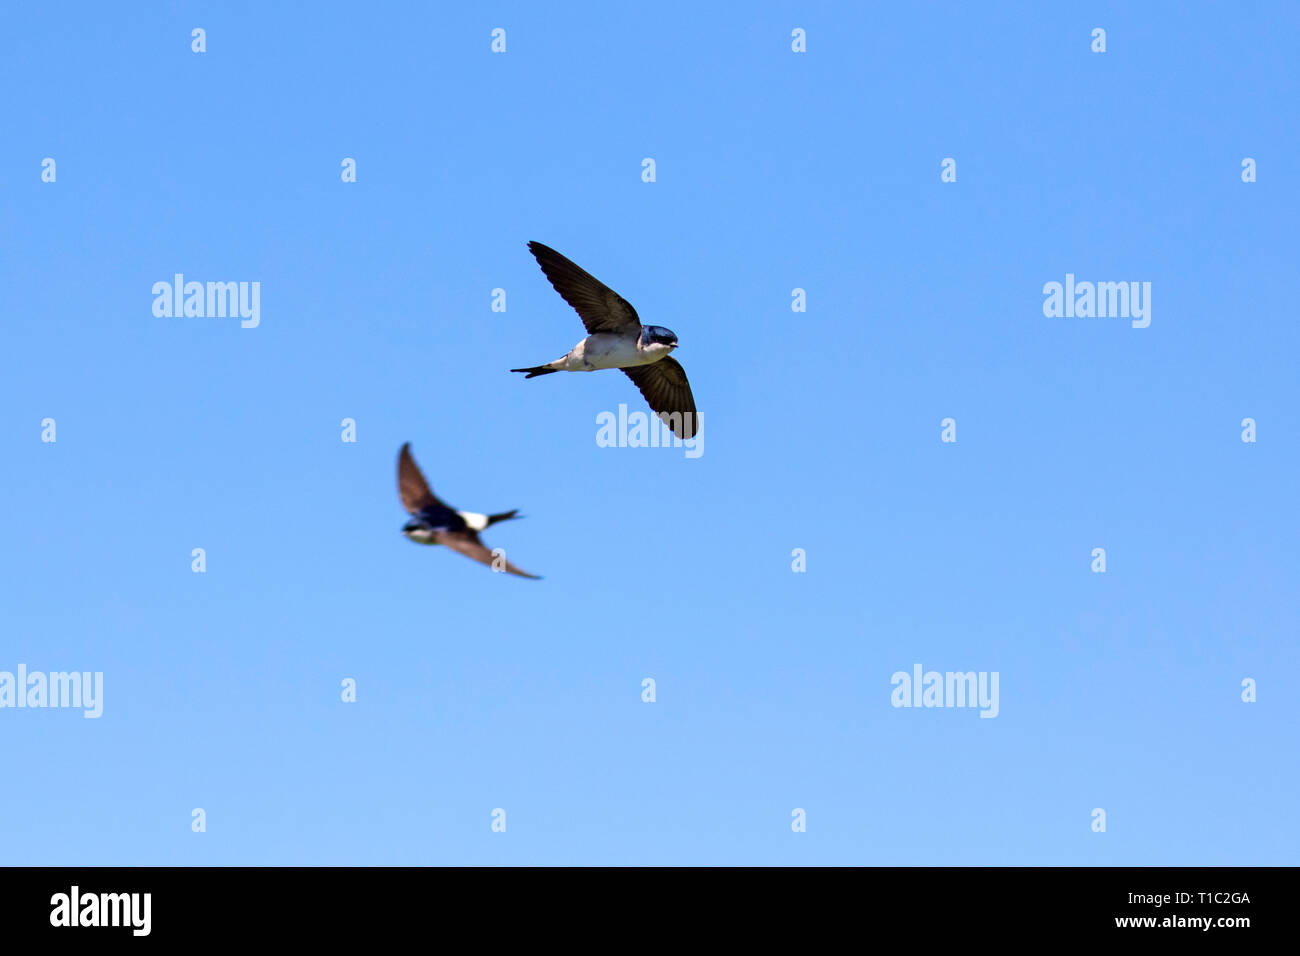 Two common house martins / northern house martin (Delichon urbicum) in flight against blue sky - Stock Image